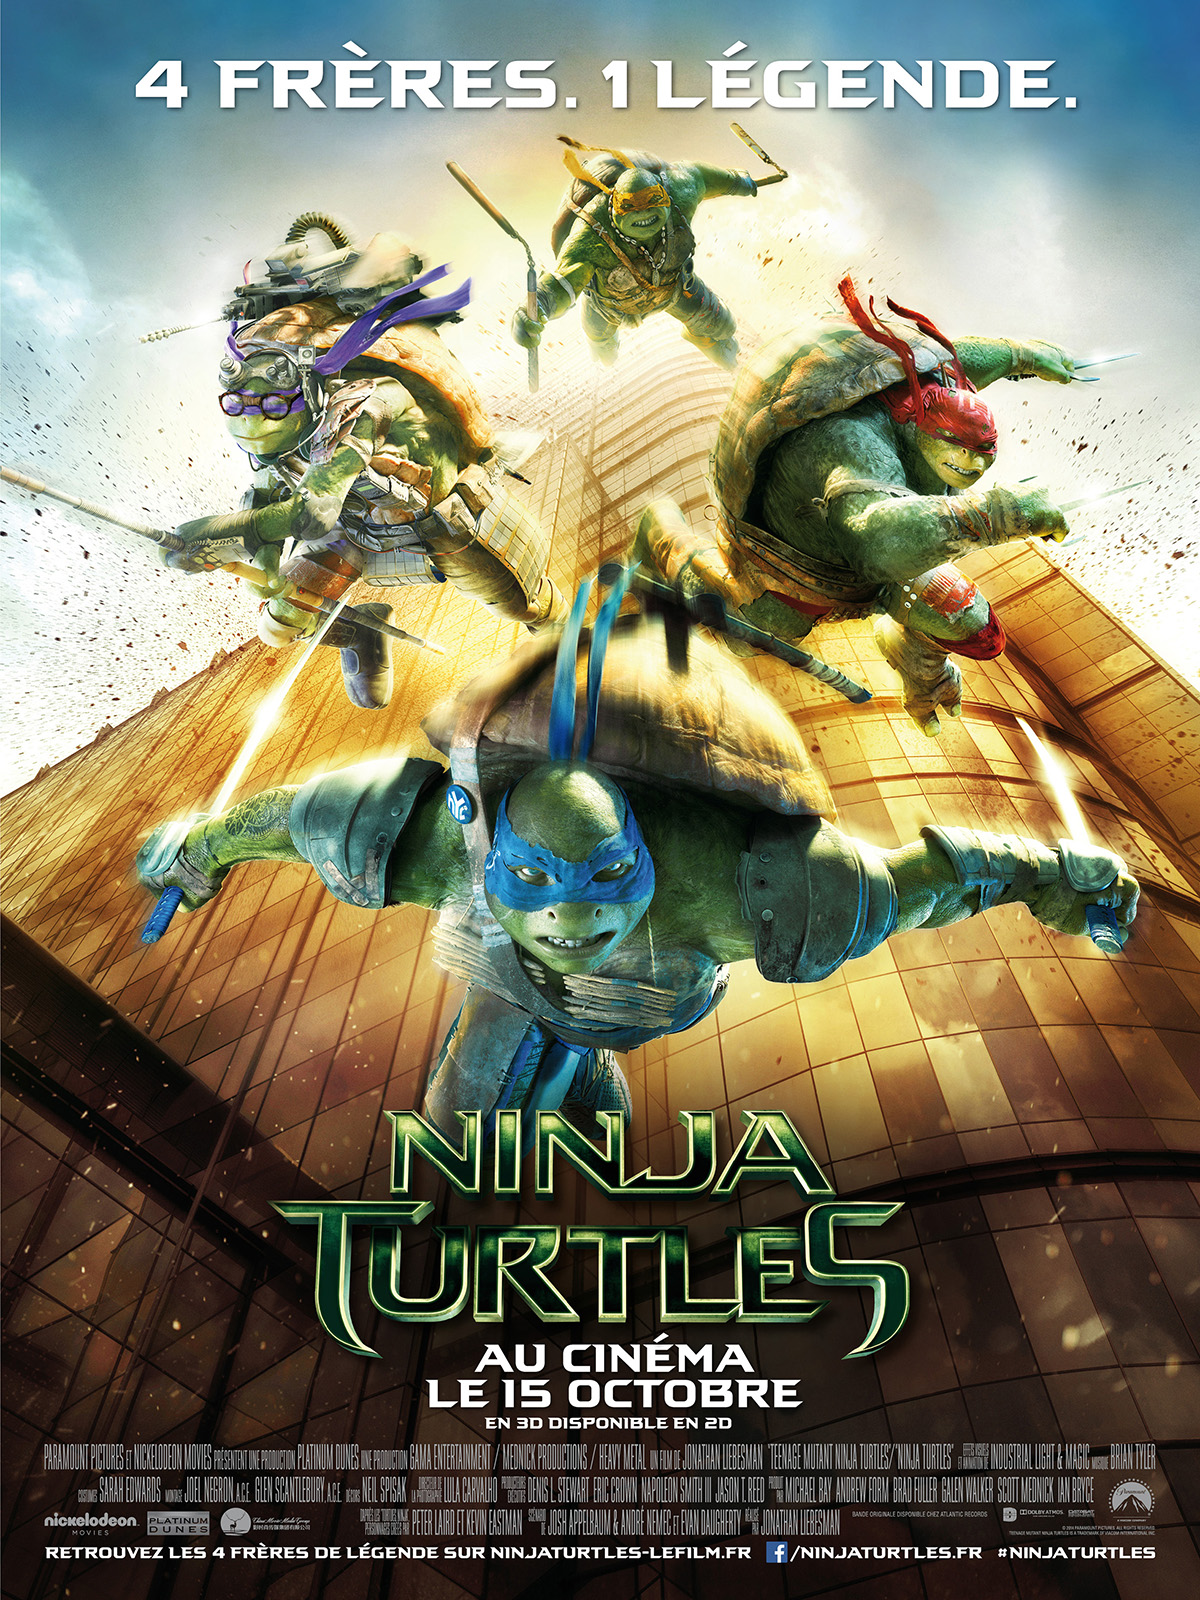 Ninja turtles film 2014 allocin - Michaelangelo tortue ninja ...